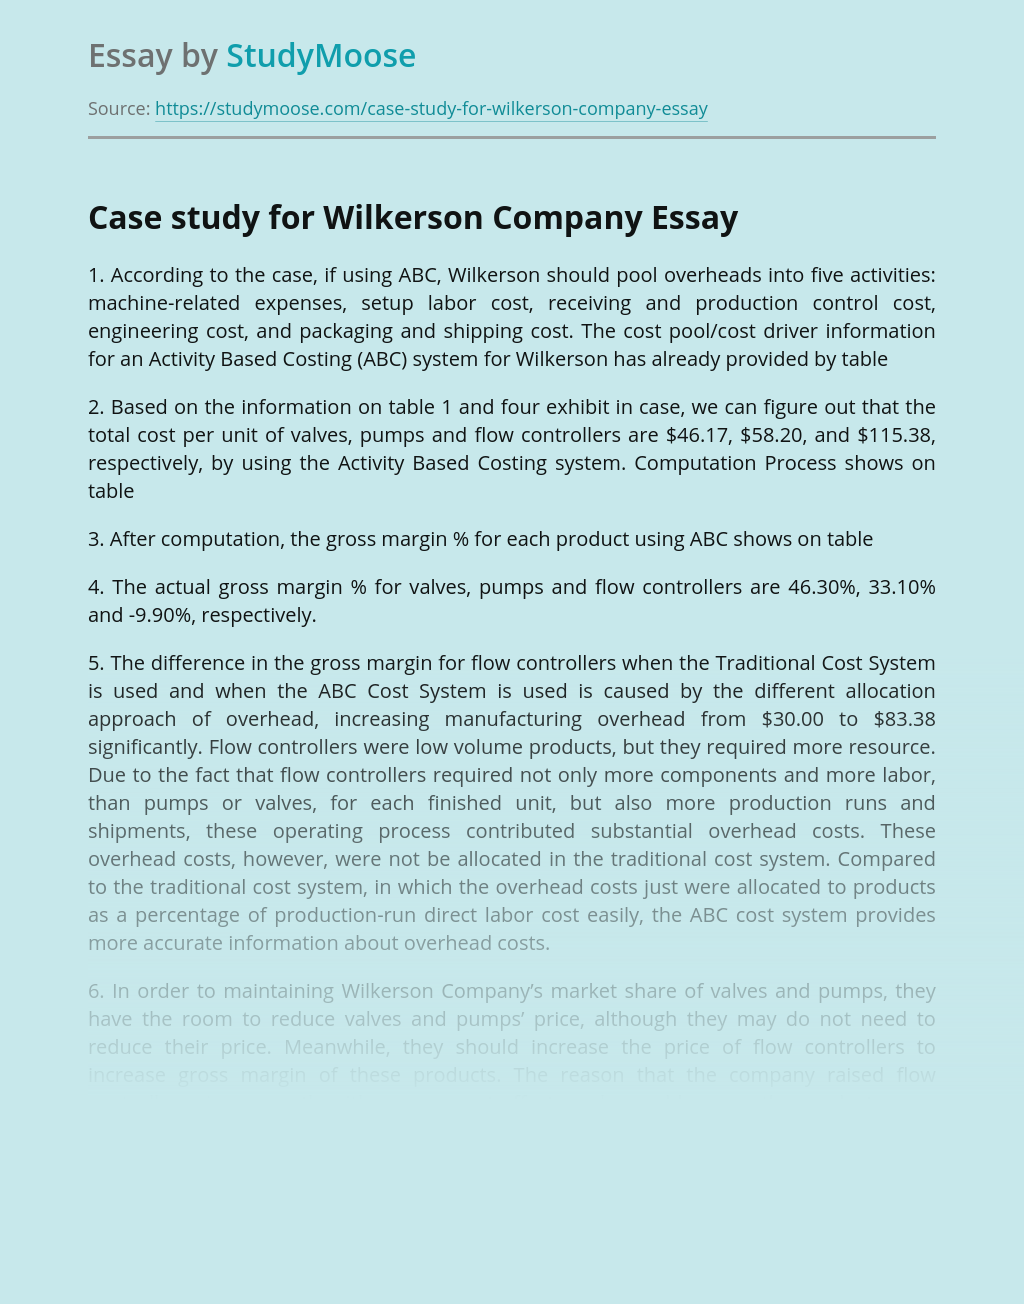 Case study for Wilkerson Company